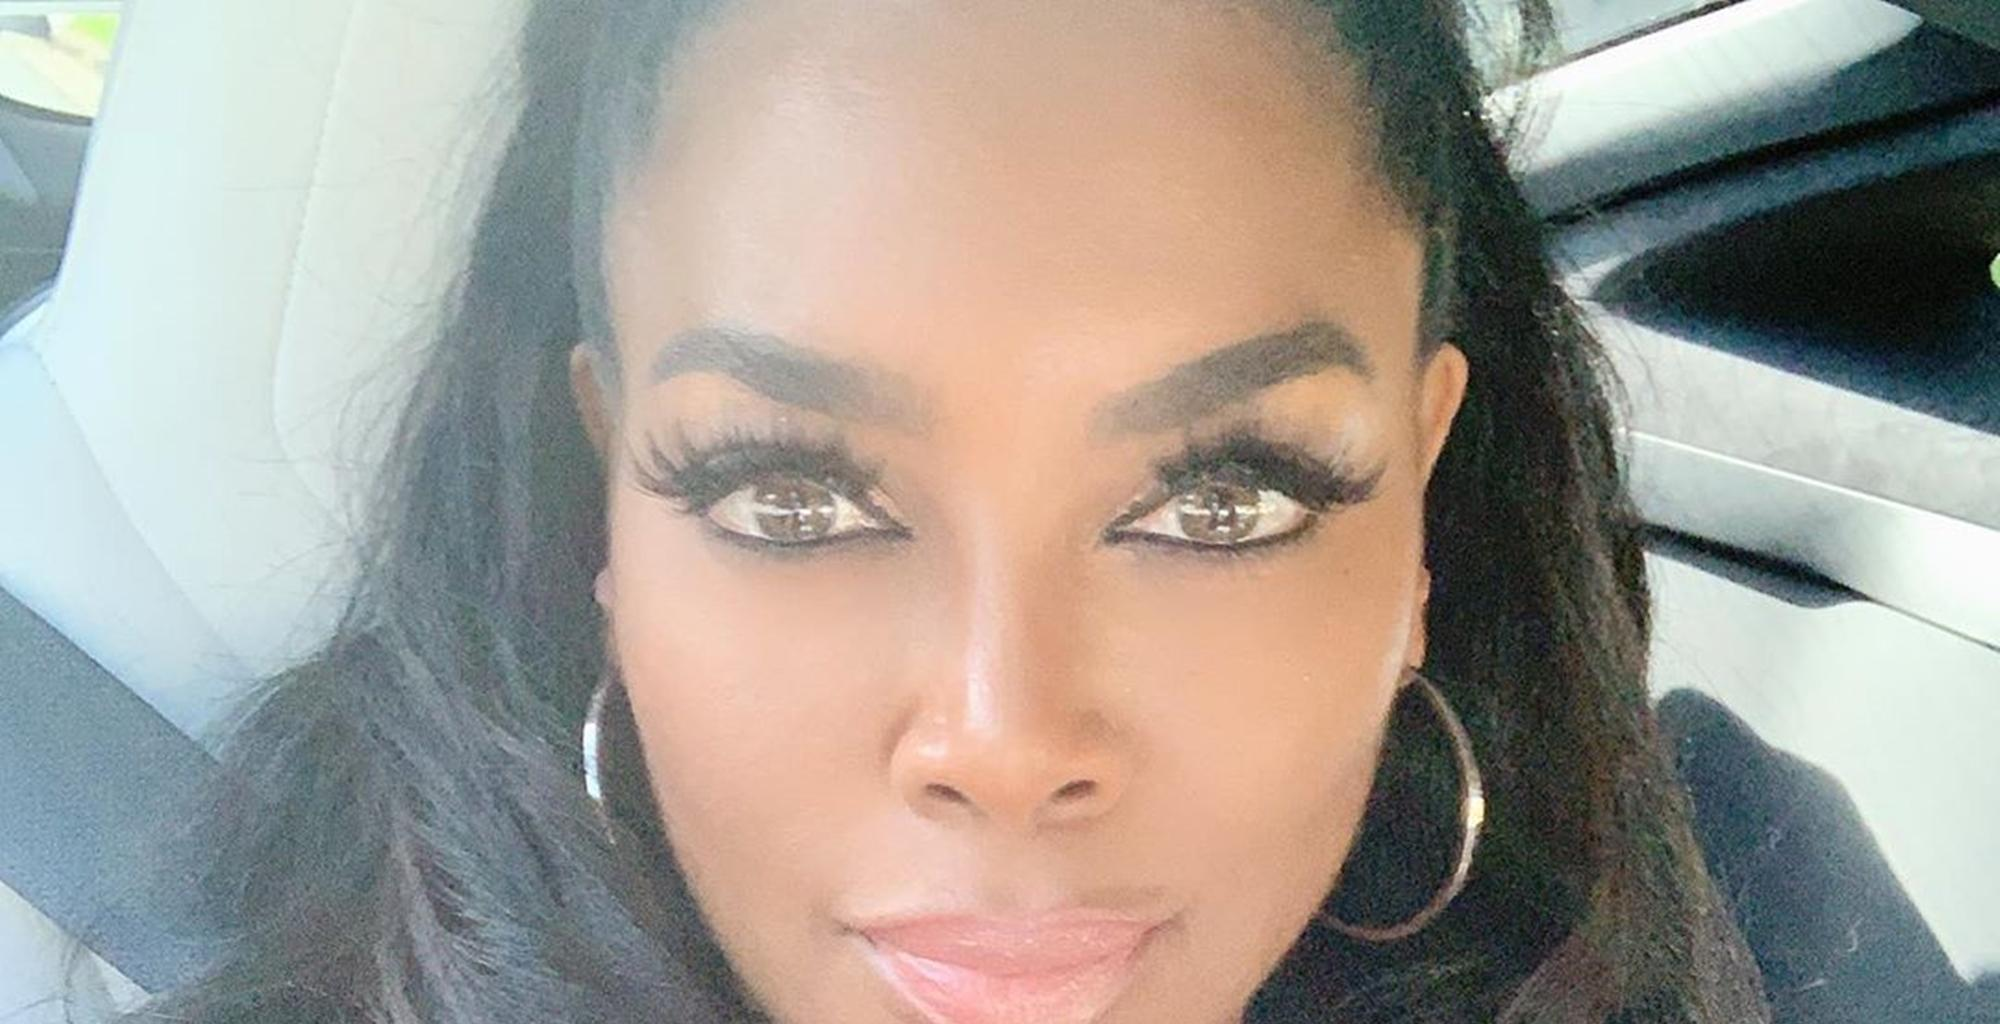 Kenya Moore Shocks Fans With A Footage Featuring An Accident Near Her Home - She And Brooklyn Daly Could Have Been Hit By Tragedy!